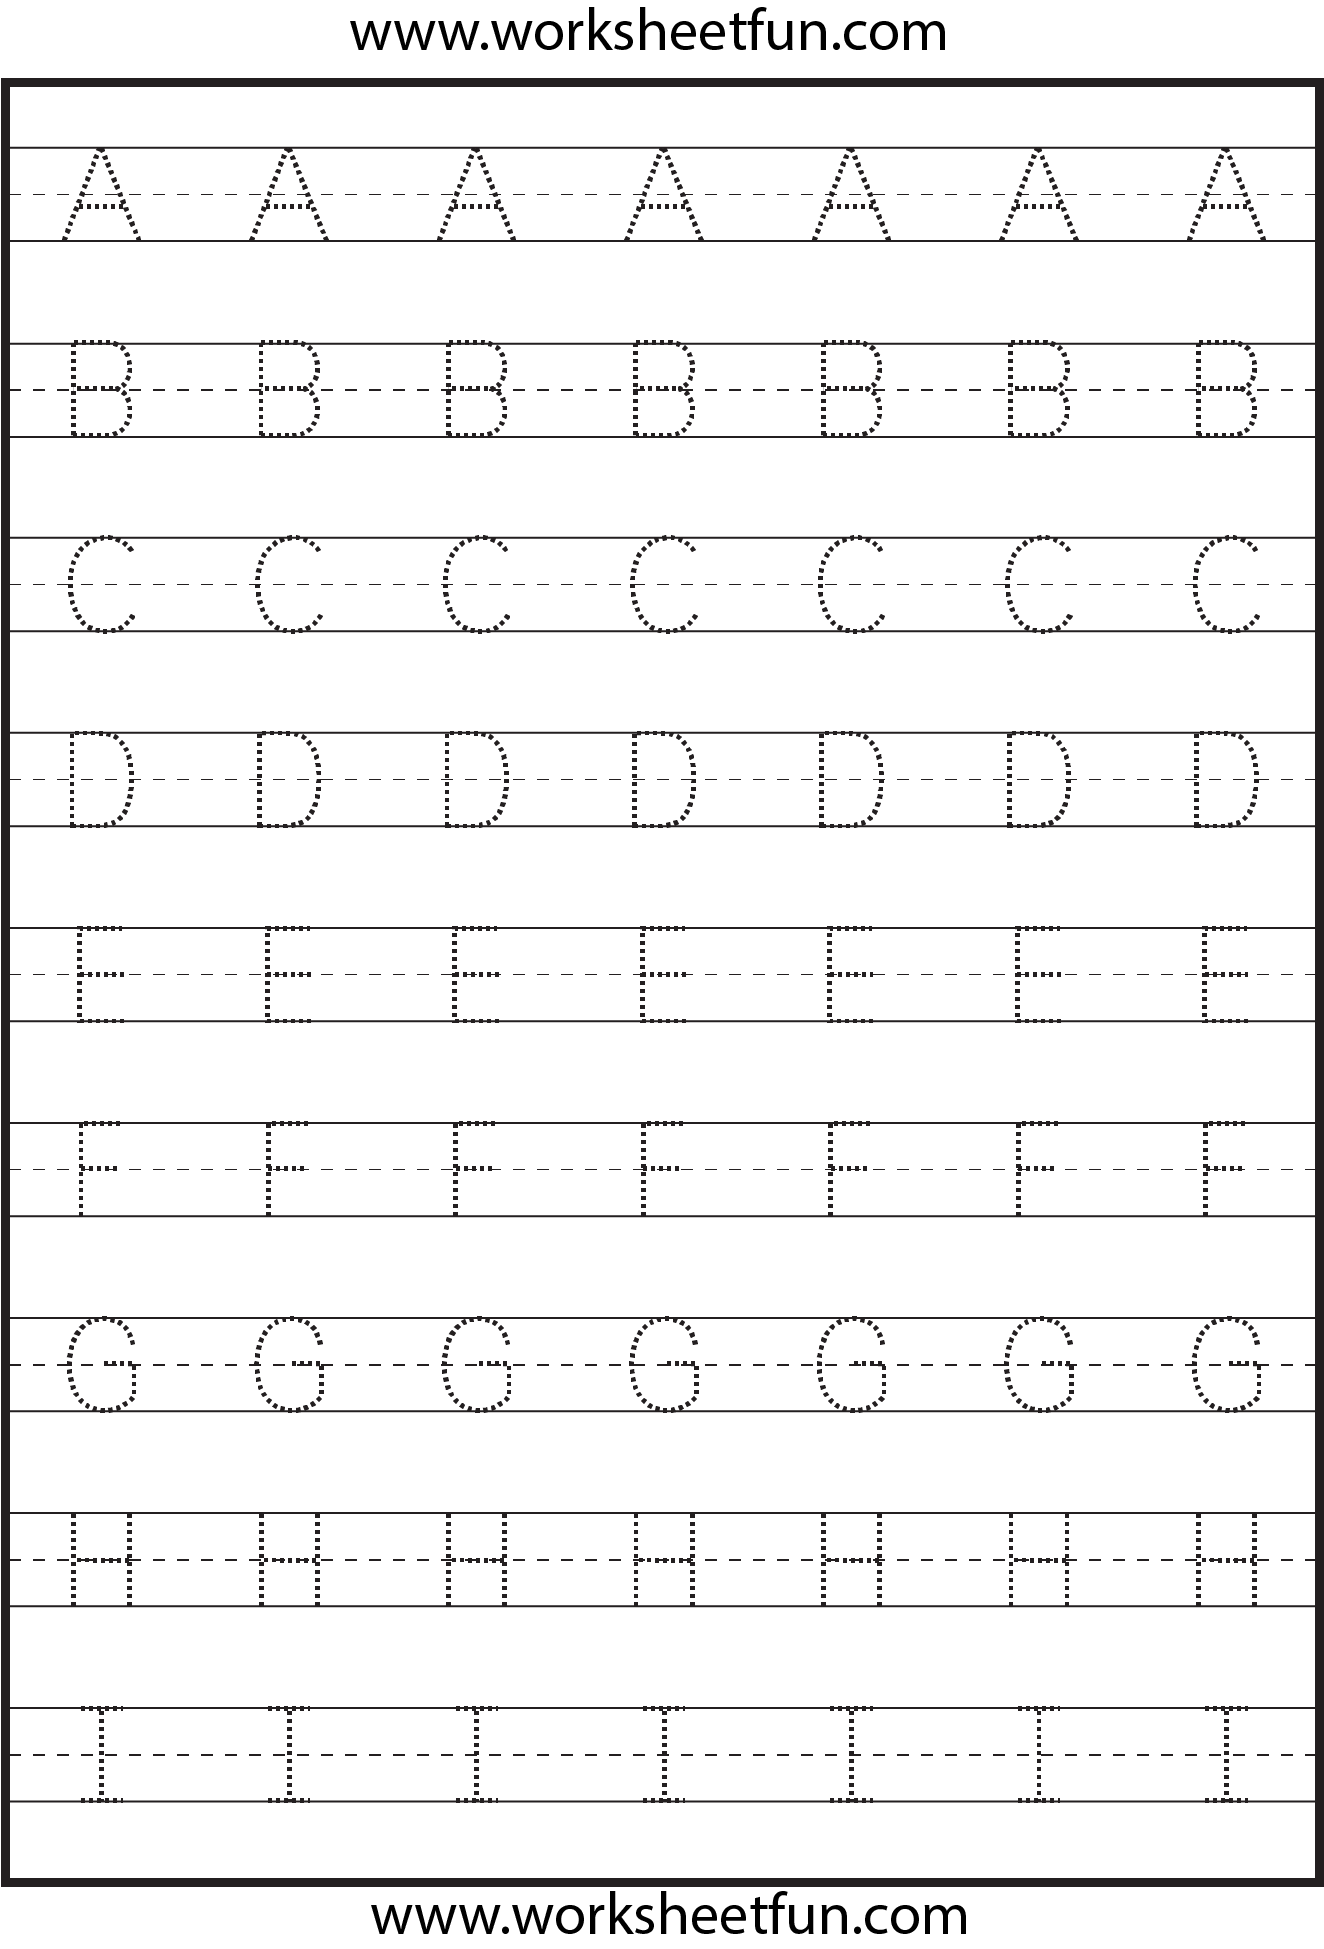 Worksheet Alphabet Tracing Worksheet tracing uppercase letters capital 3 worksheets letter tracing